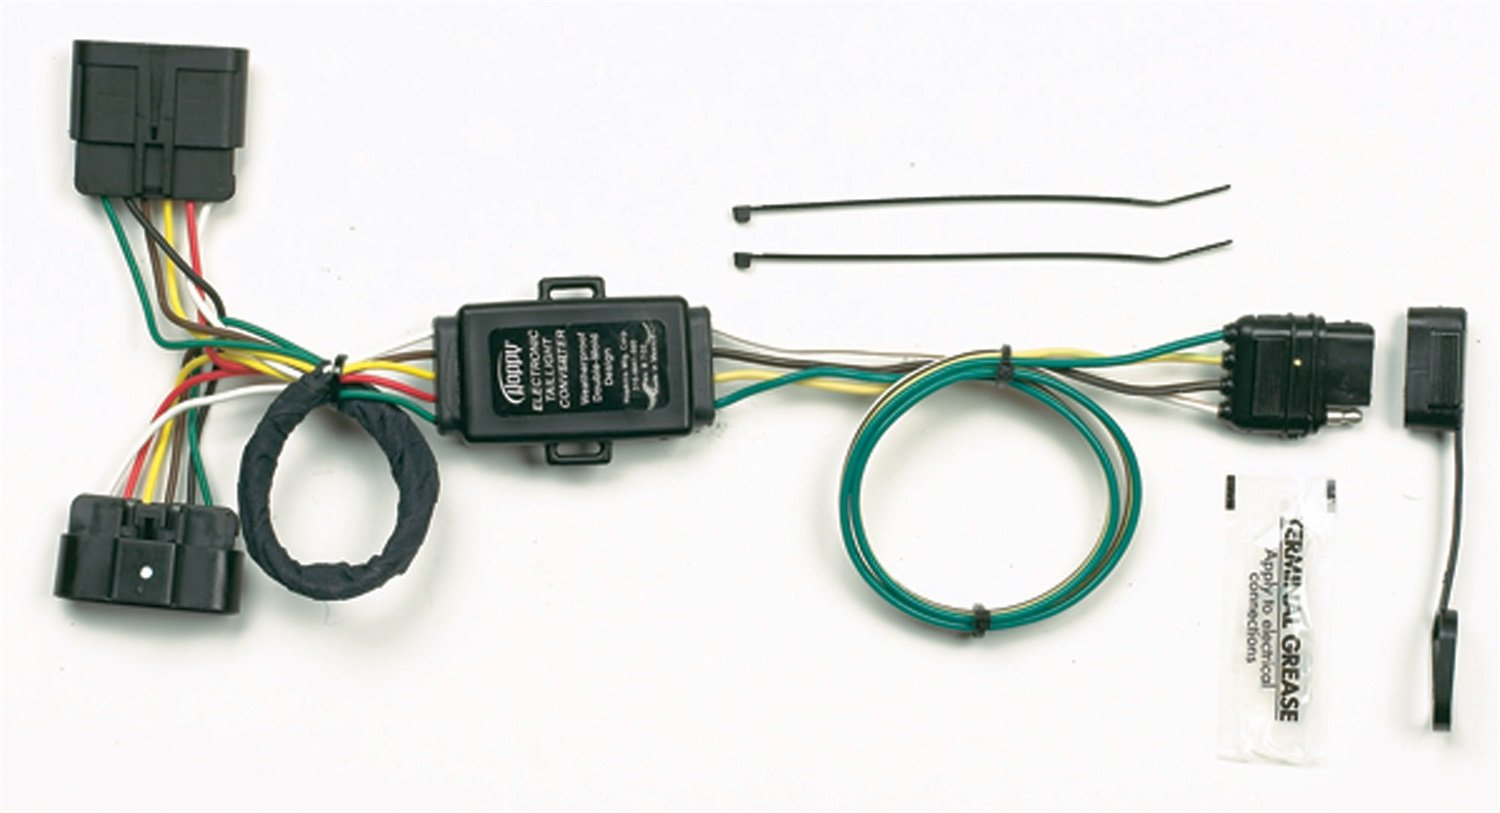 61exX8uloML._SL1500_ amazon com hopkins 41165 plug in simple vehicle wiring kit 2004 chevy colorado trailer wiring harness at soozxer.org